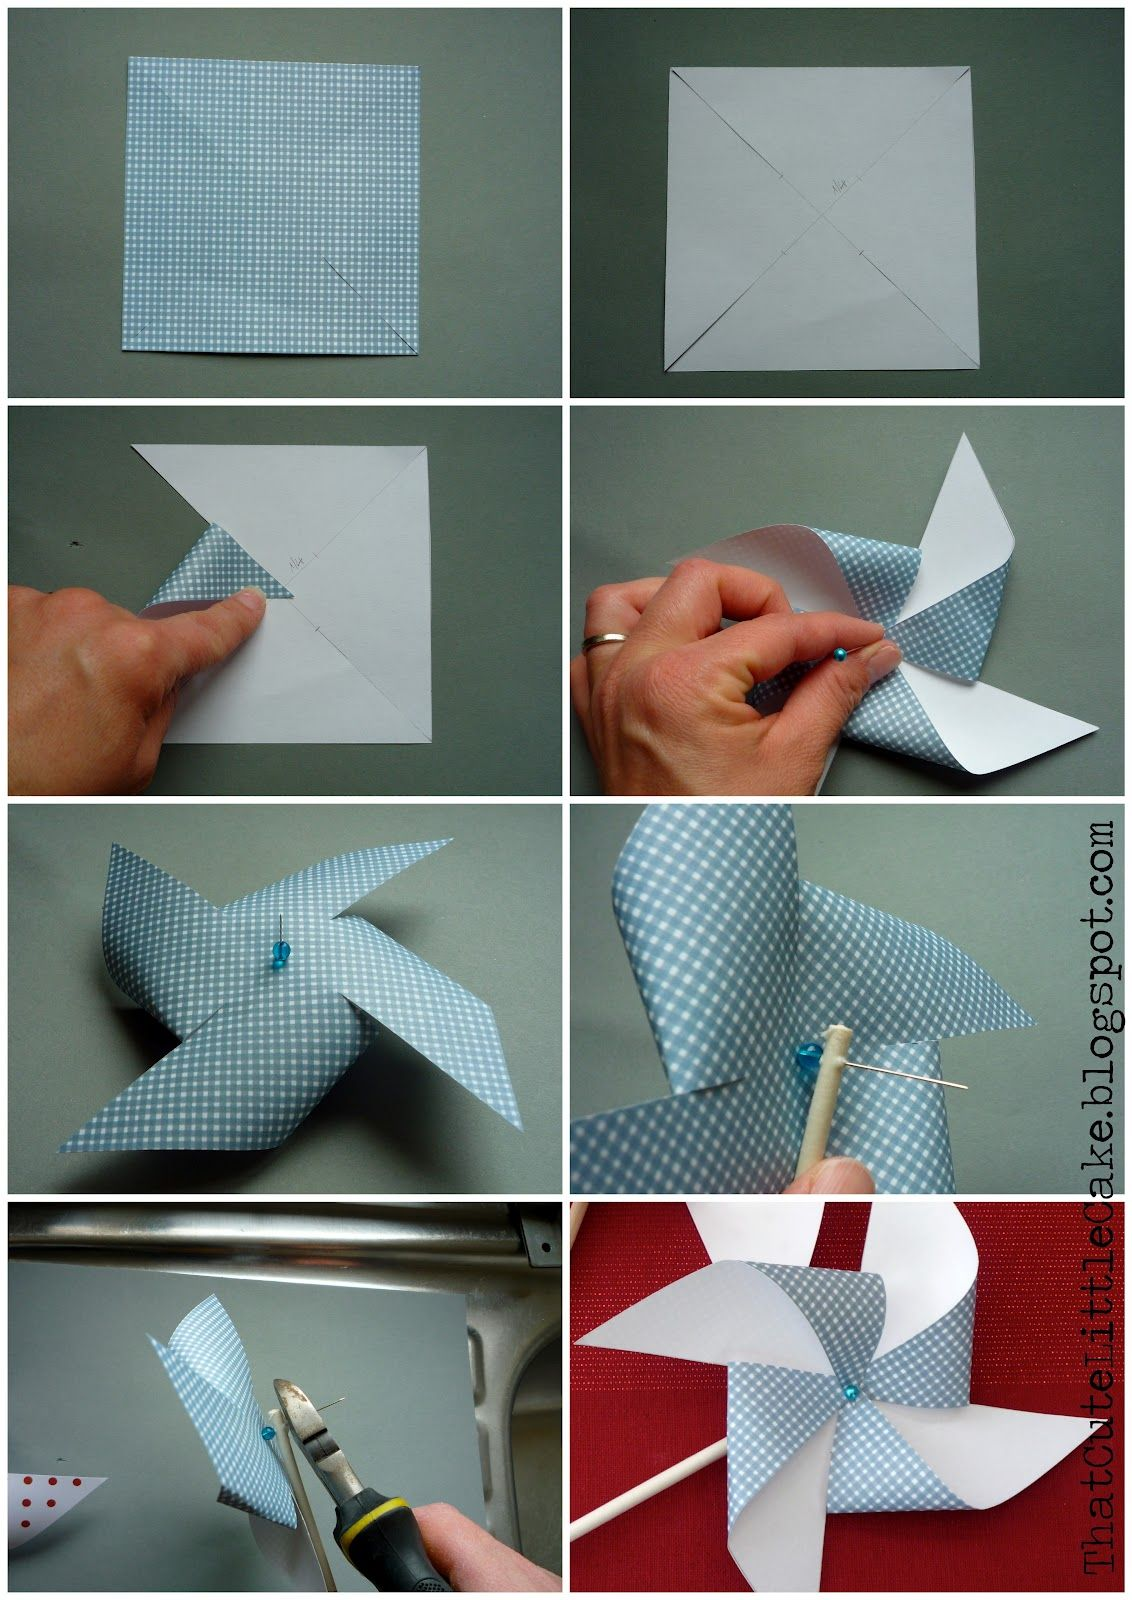 Make your own pinwheels here is how to make your own paper make your own pinwheels here is how to make your own paper pinwheels jeuxipadfo Choice Image